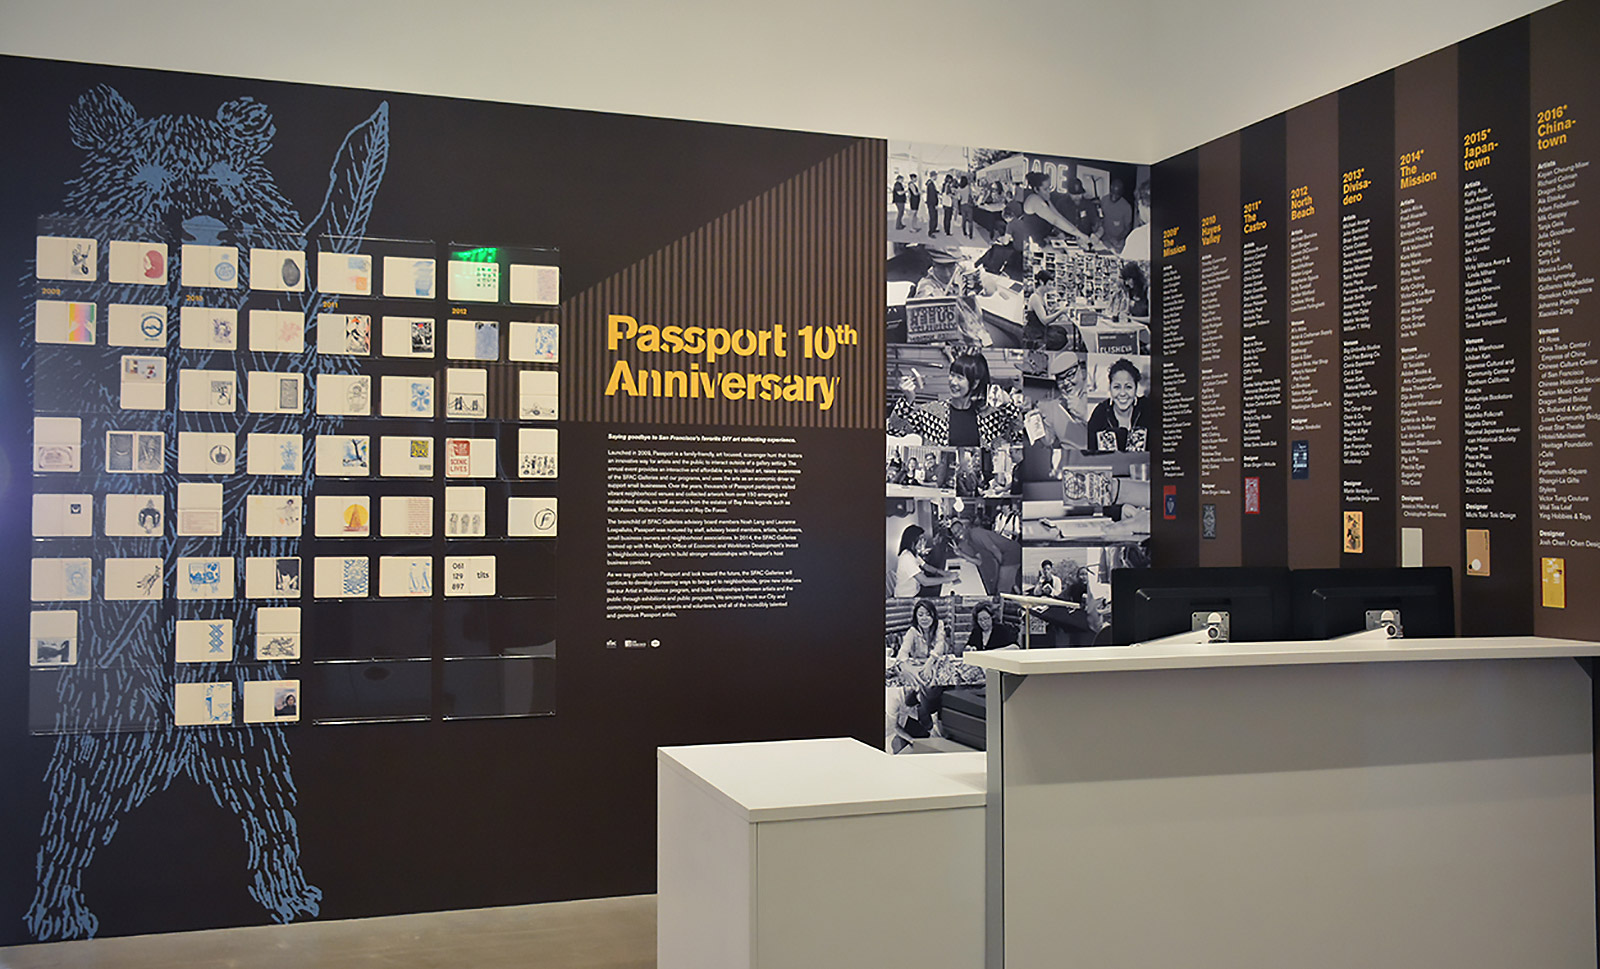 SFAC Main Gallery exhibit: 9 years of Passport event stamps